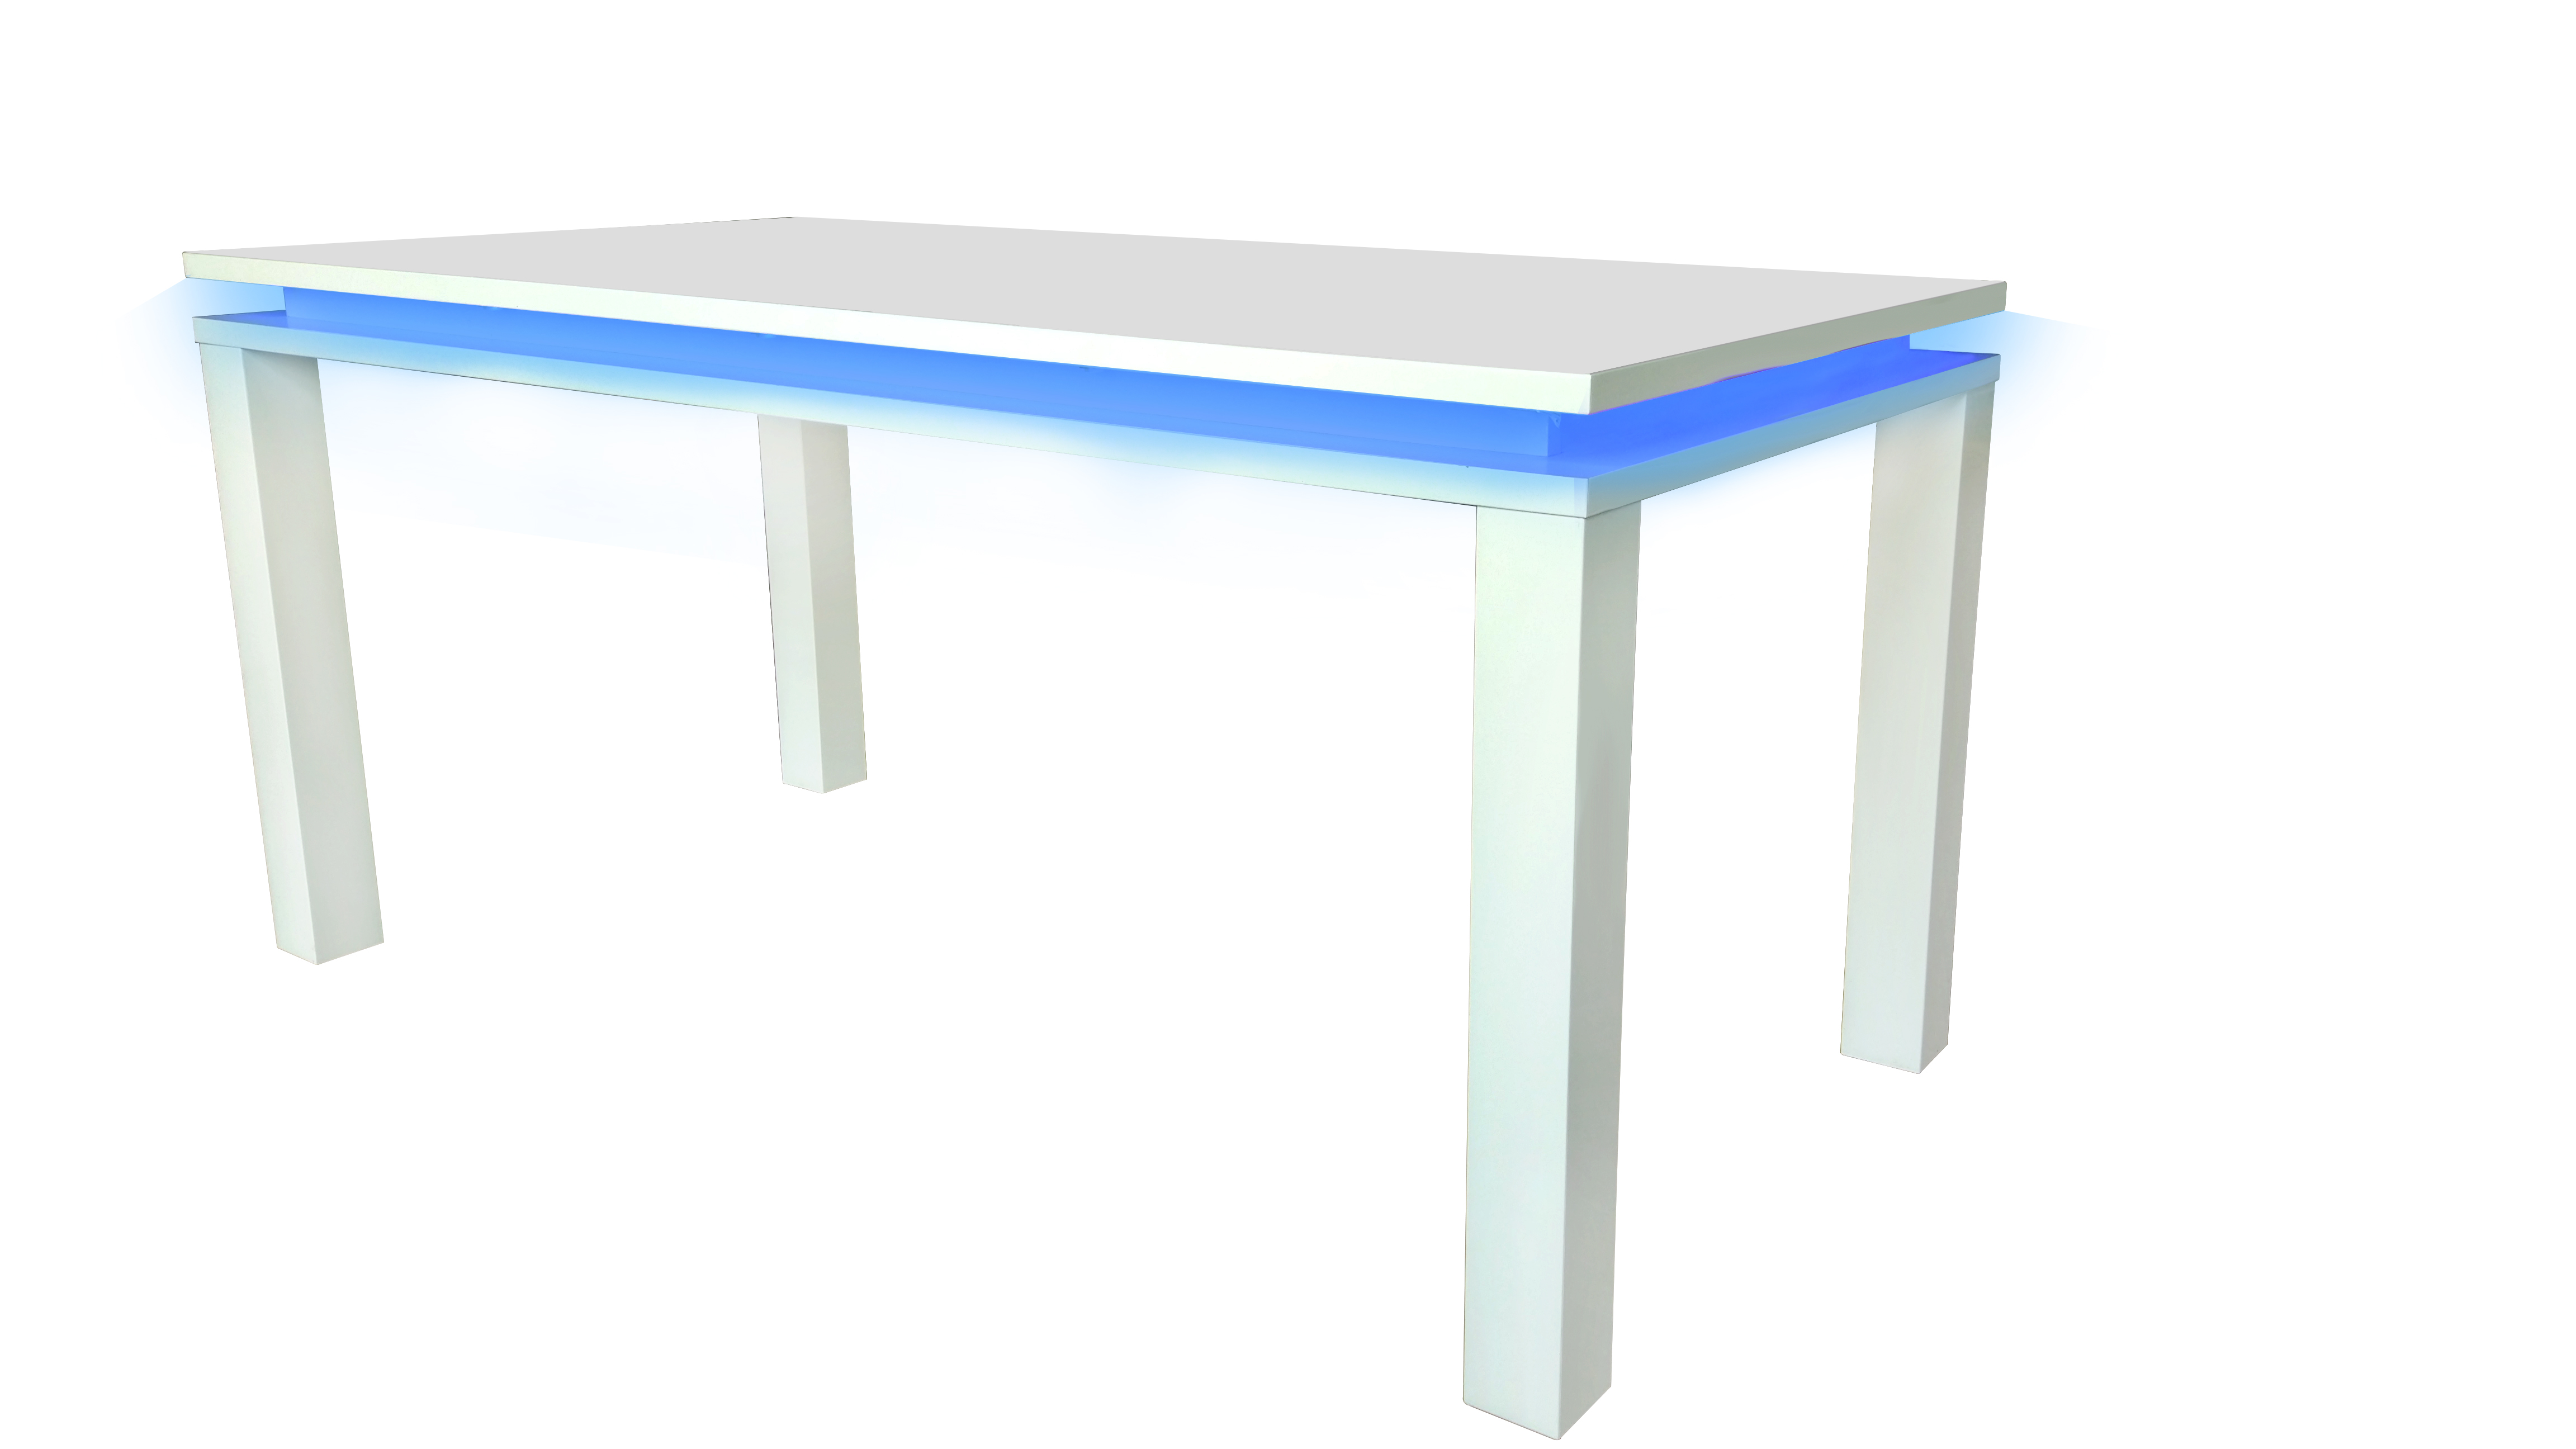 Milano High Gloss Modern Dining Room Table